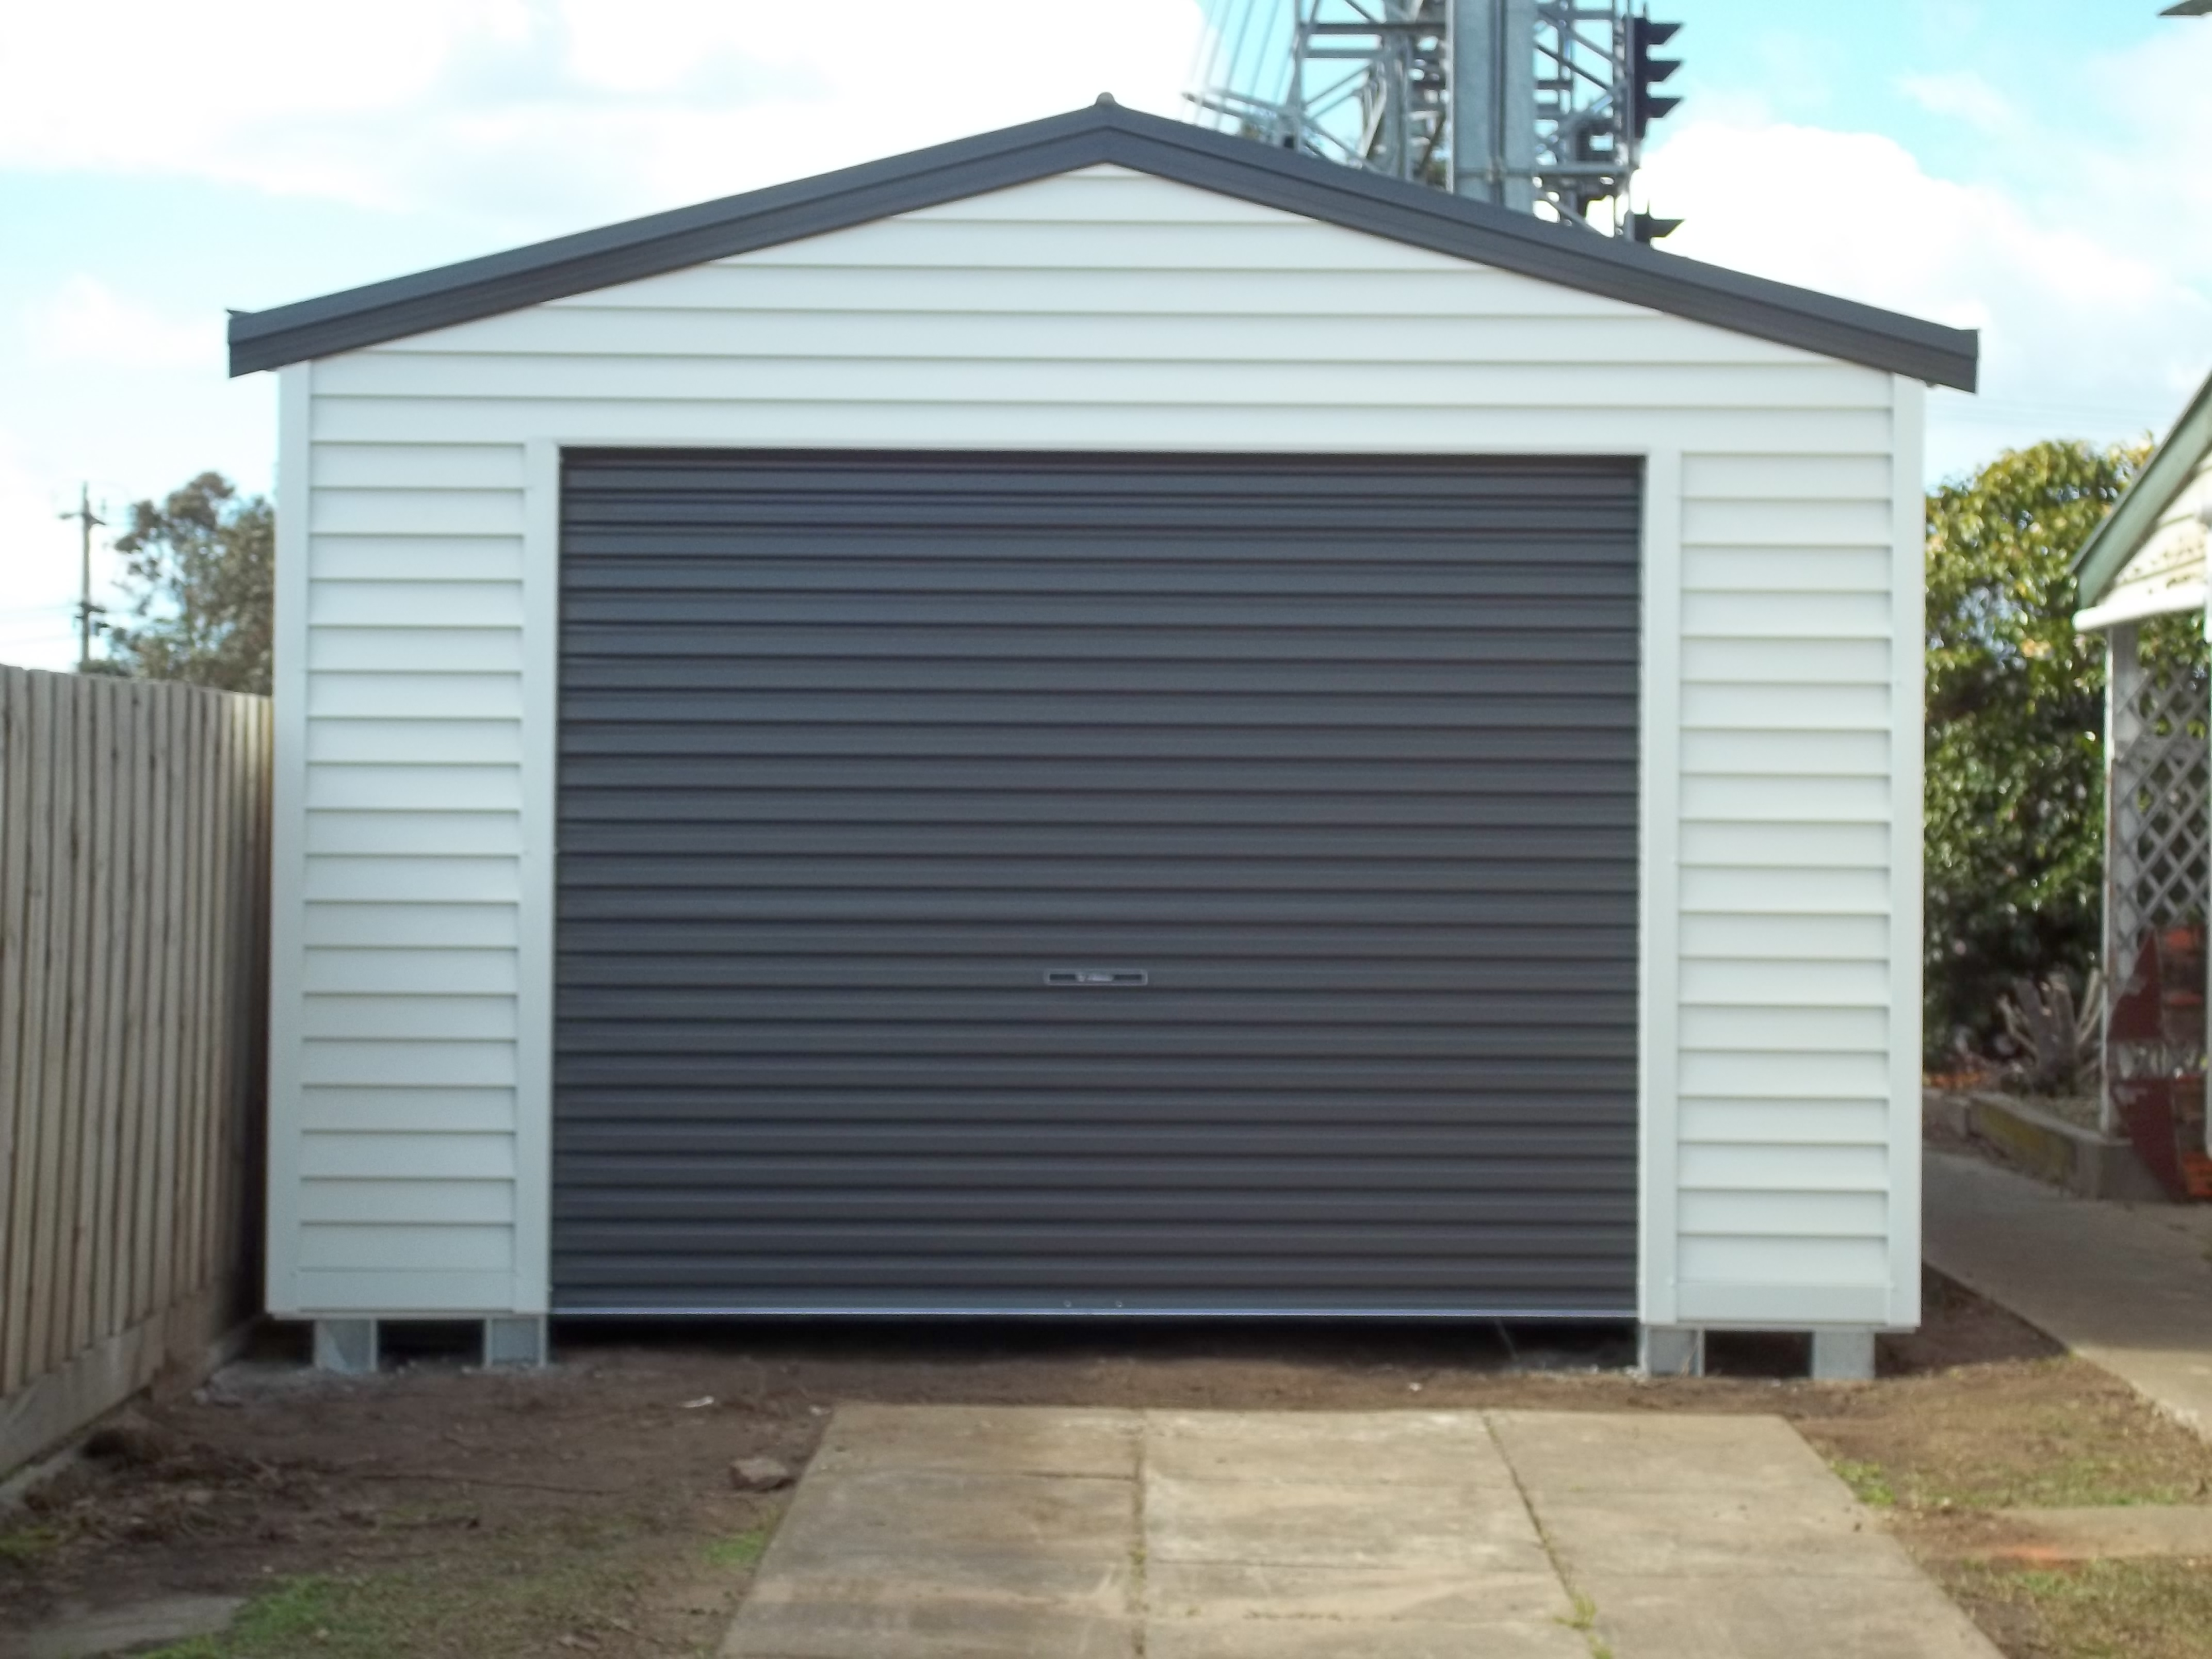 beige steel shed vinyl coated garage p roll storage sheds type up home depot the murryhill cream door ft x arrow metal